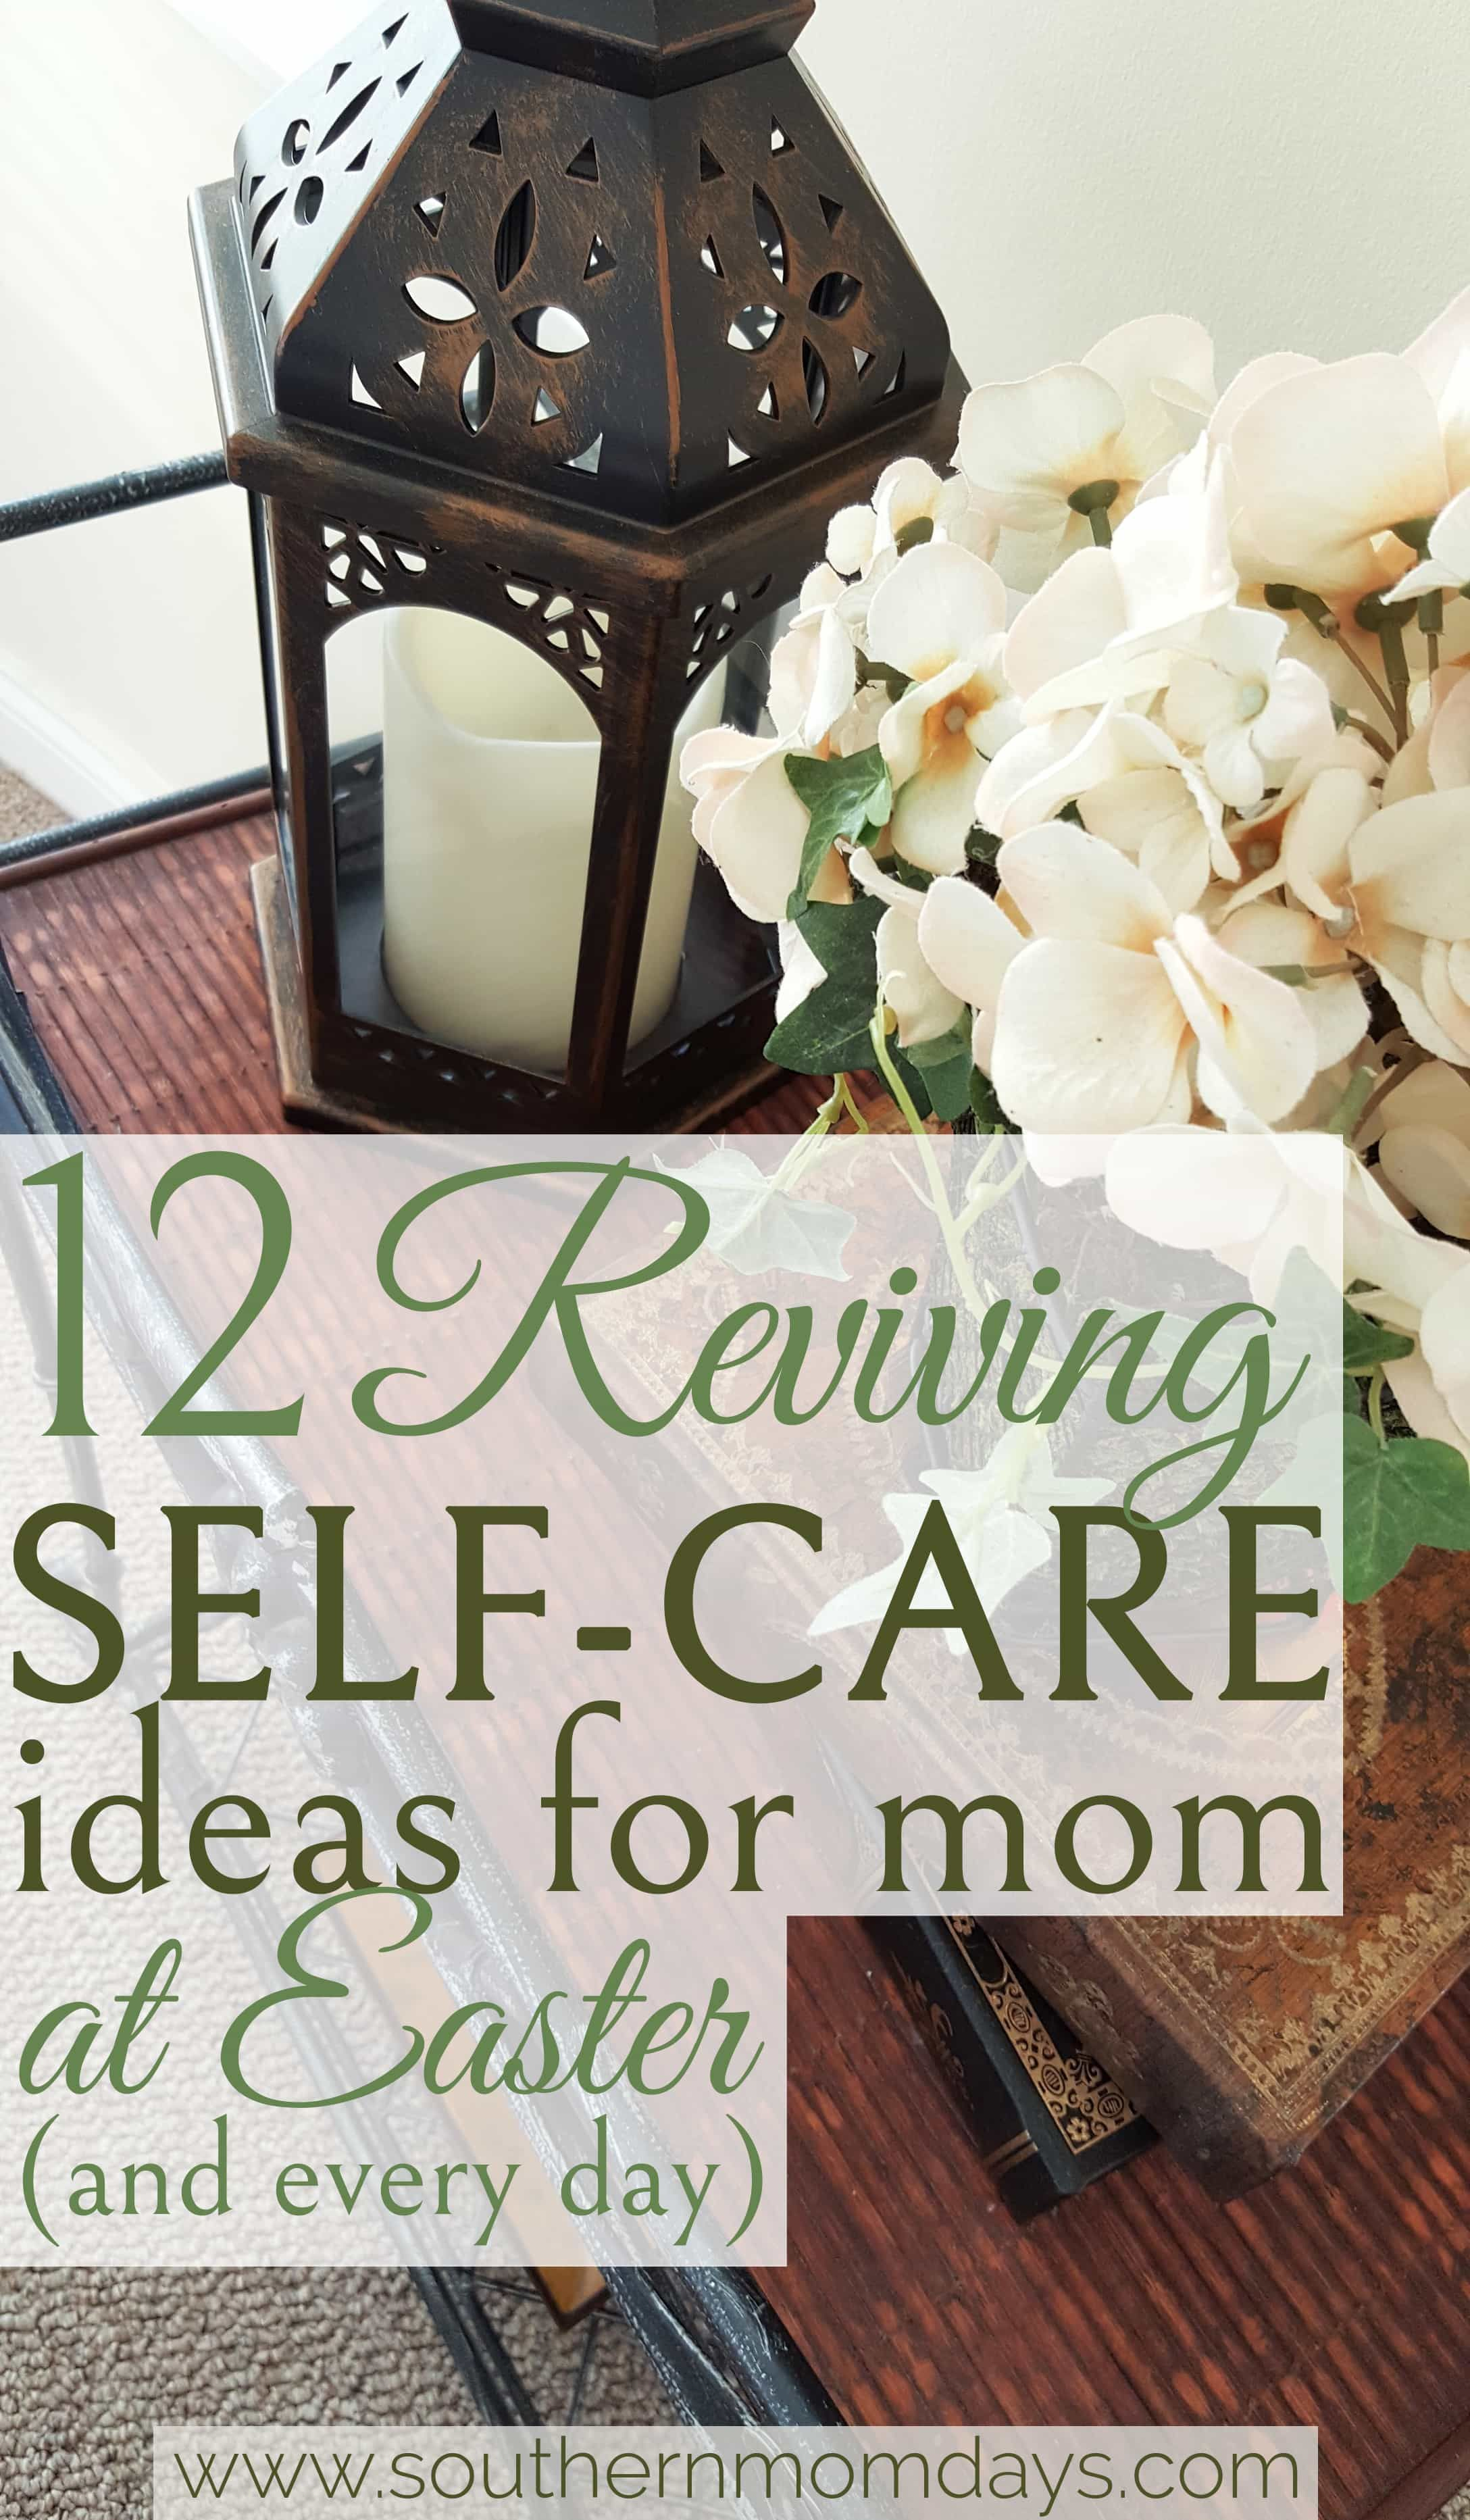 12 reviving selfcare ideas for mom at easter and every